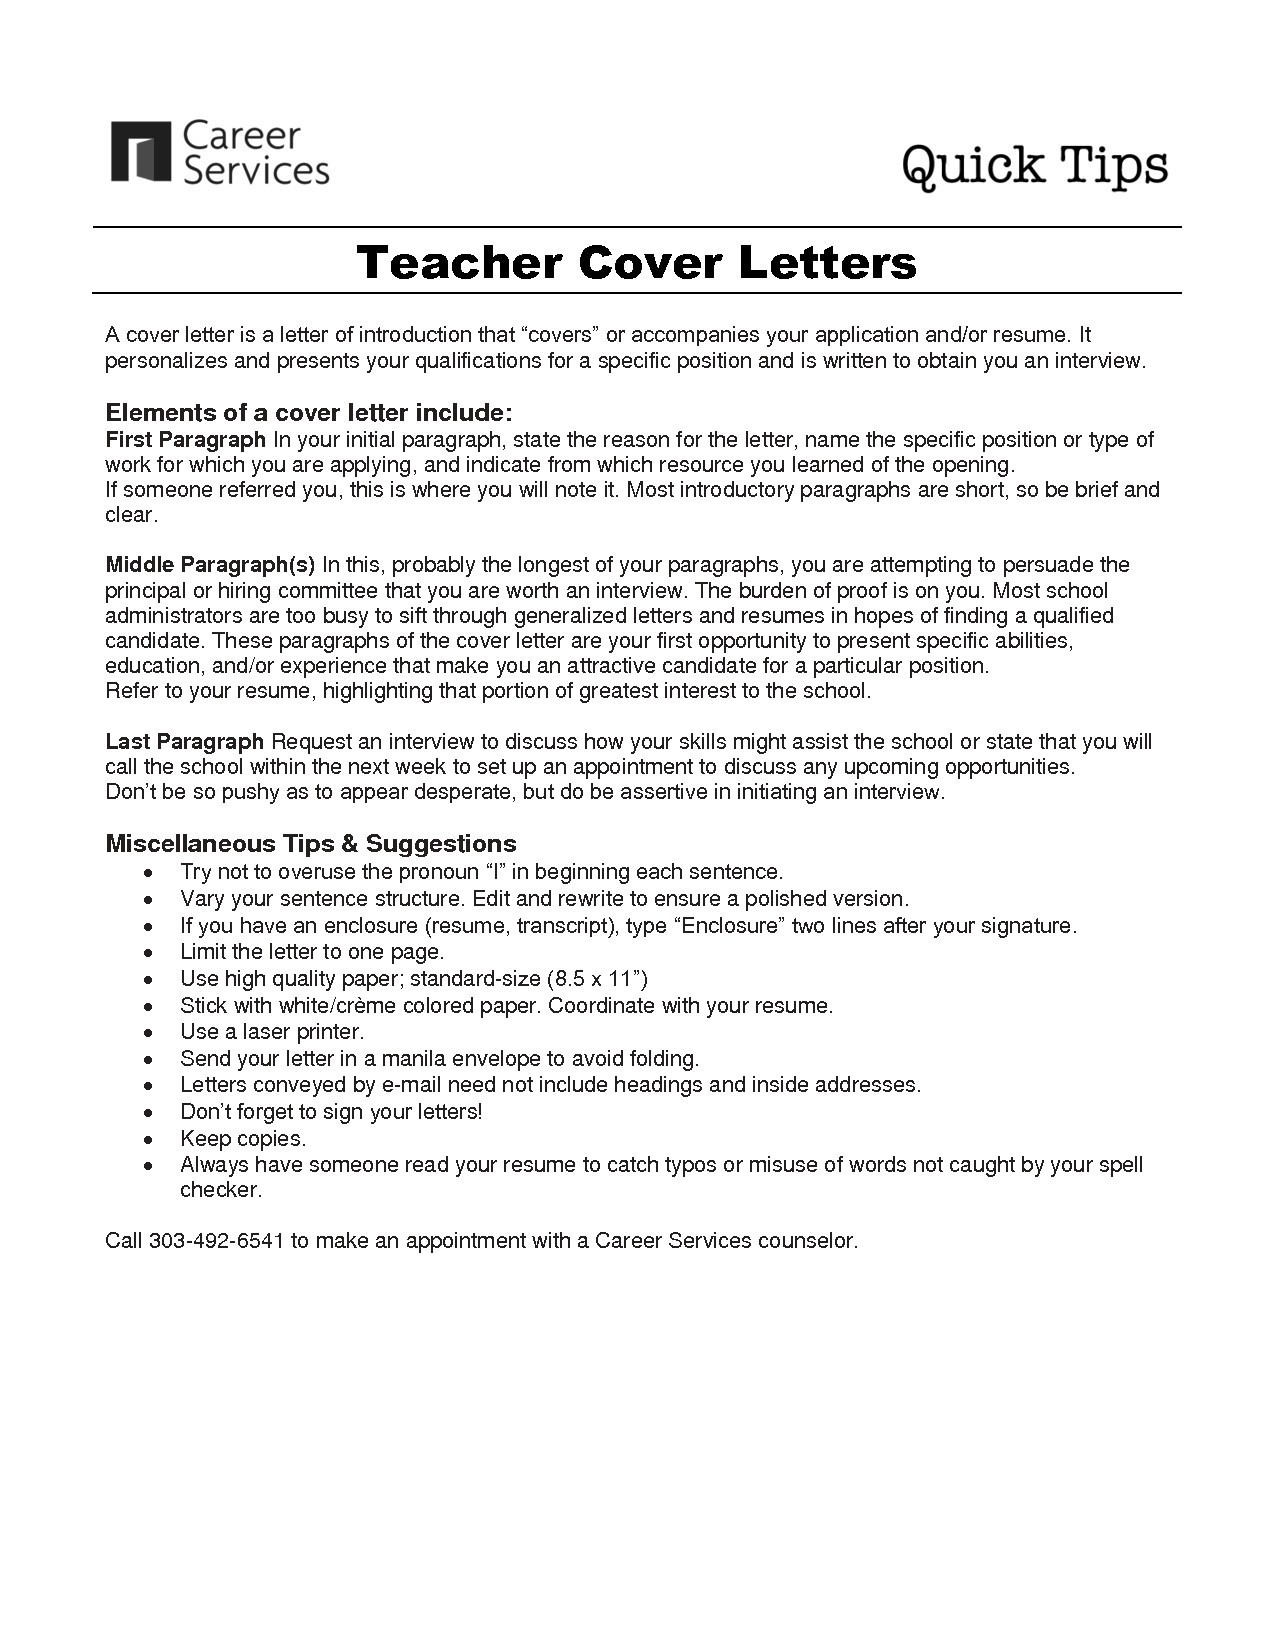 Linkedin Cover Letter Template - Linkedin Message Template